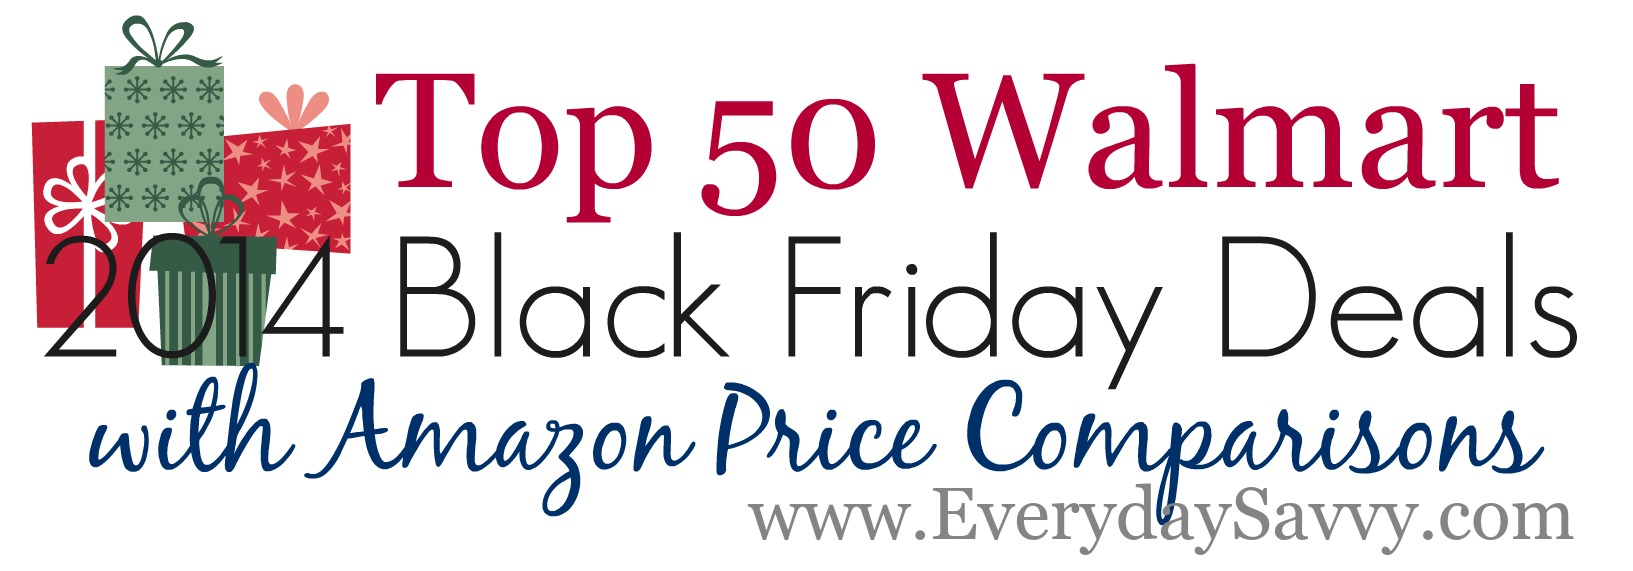 2014 Top 50  Walmart Black Friday Deals and Amazon price Comparisons plus reviews!